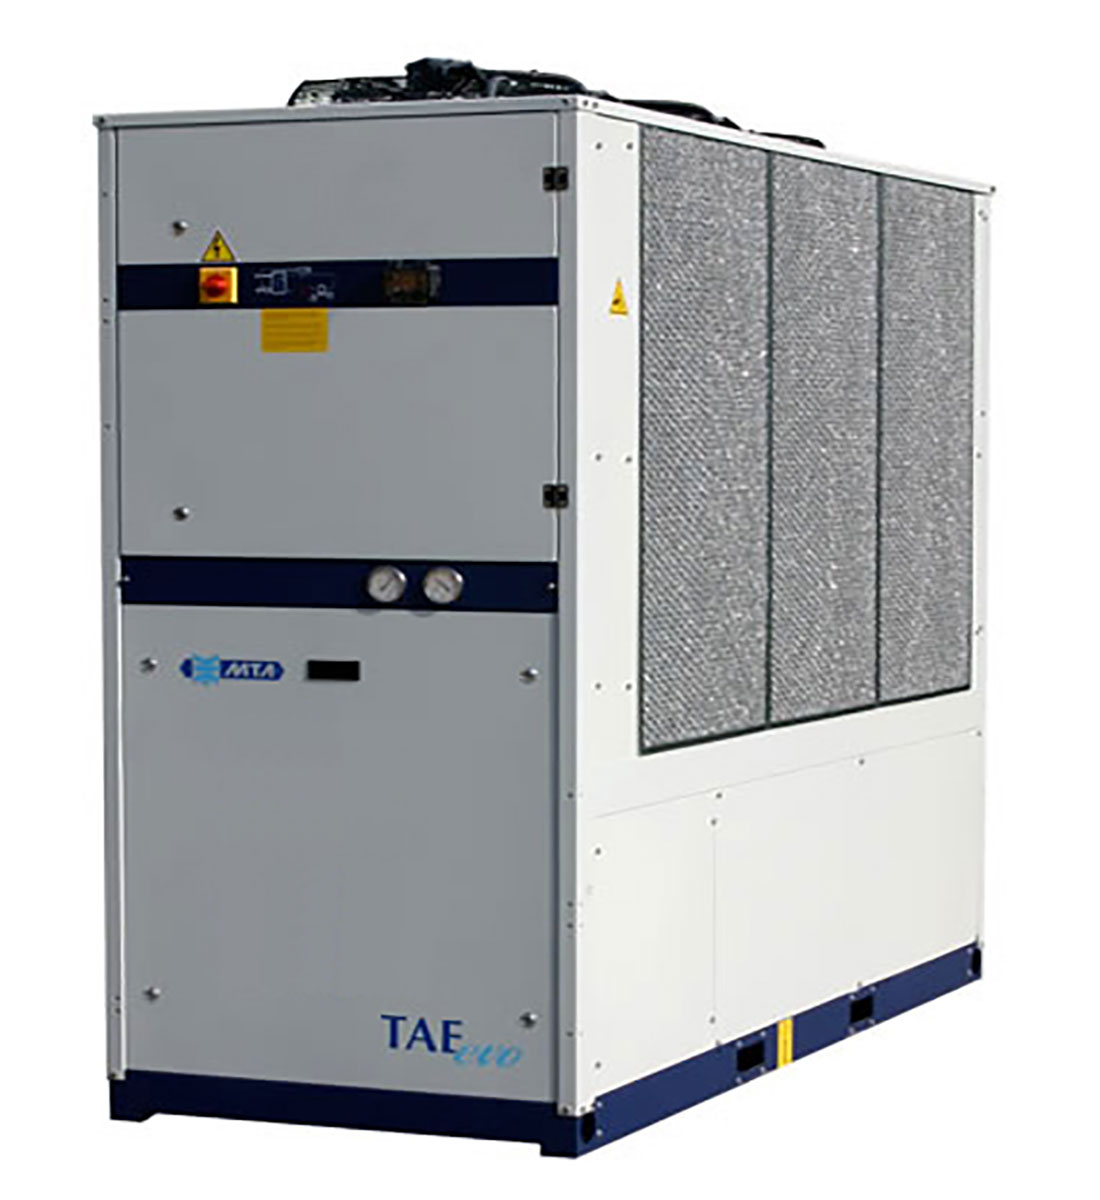 75kW Fluid Chiller